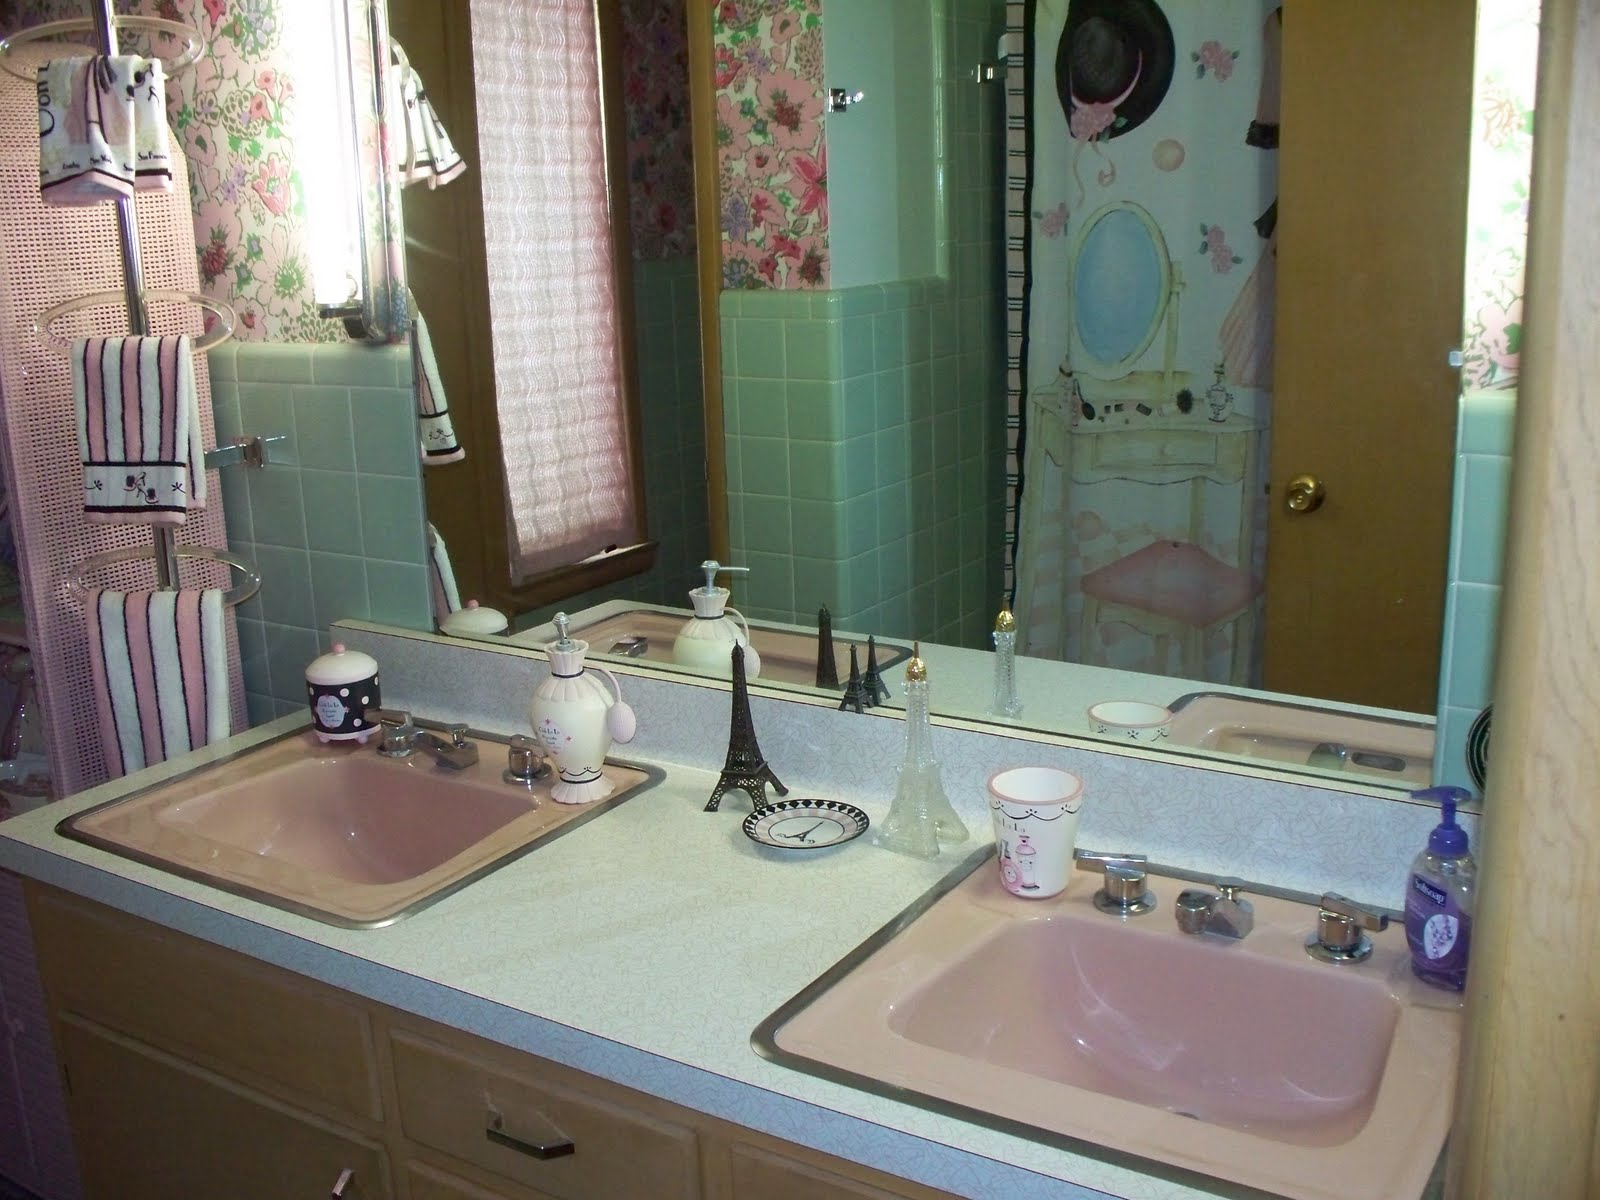 I Have It Decorated In A Theme Called Ooh La Is Set Of Bathroom Accessories Found At Kmart Fun And Think Fits Very Well